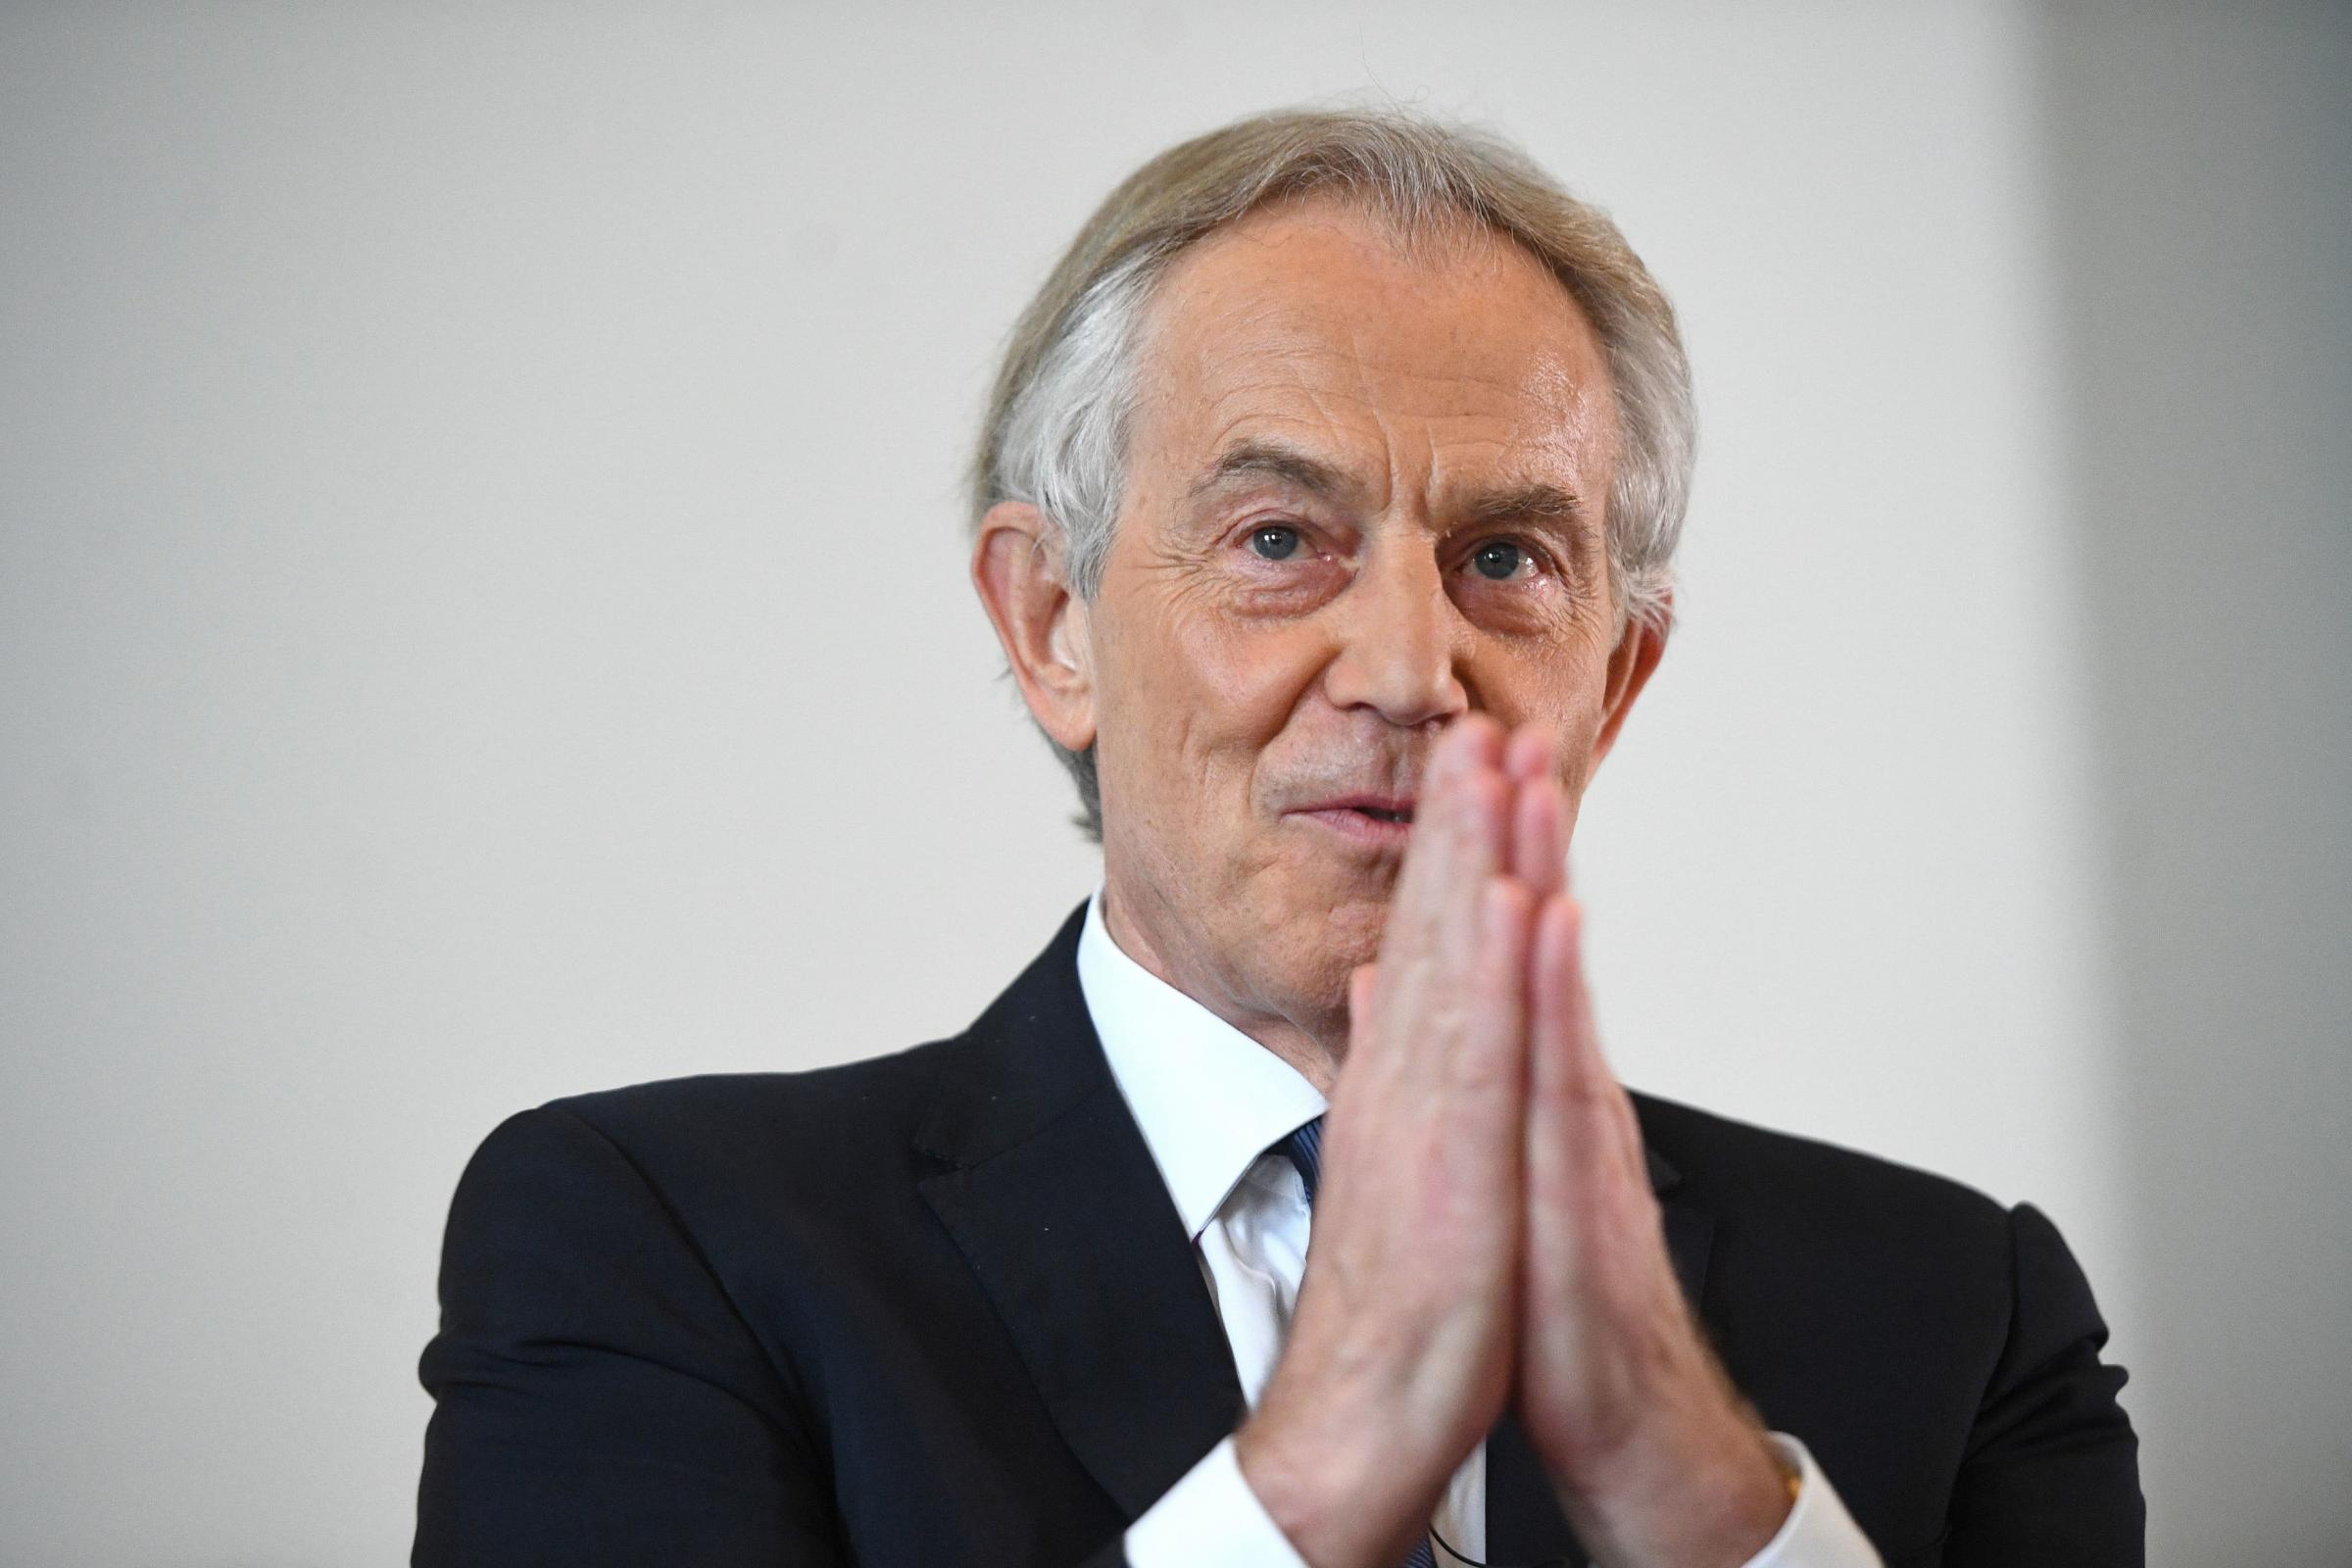 Blair condemns PM's Brexit deal as 'capitulation' to EU